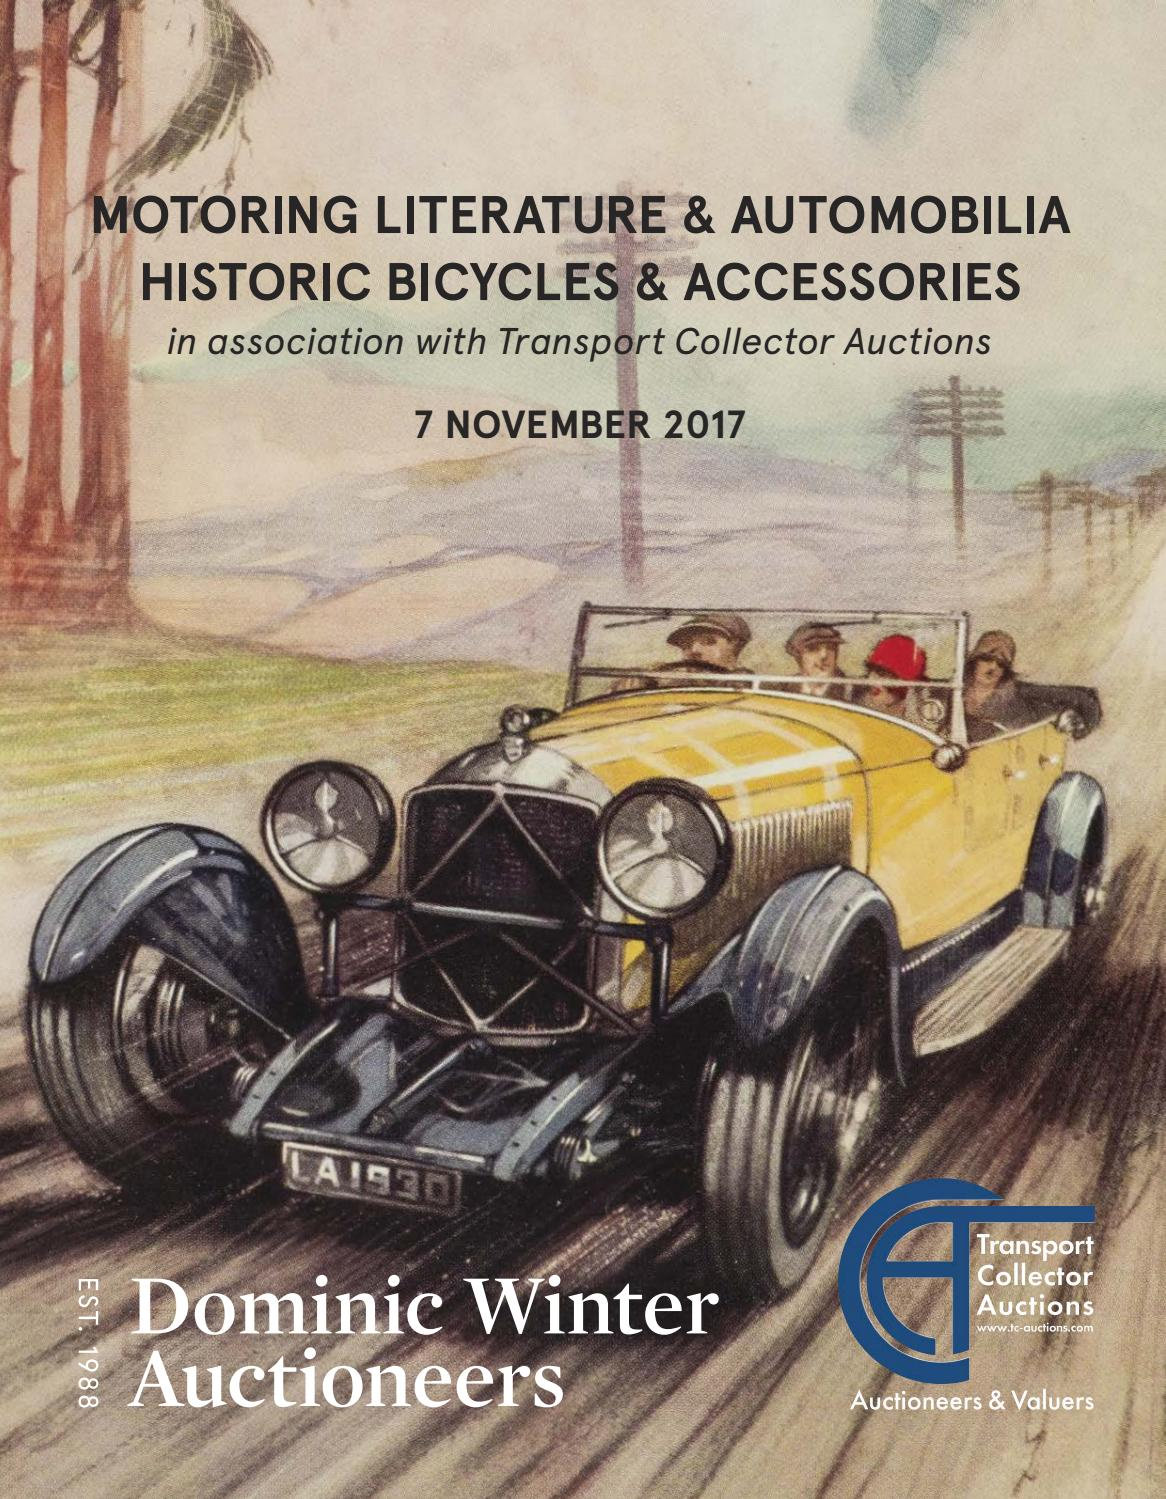 Dominic Winter Auctioneers By Jamm Design Ltd Issuu Automotive Diagrams Archives Page 185 Of 301 Wiring